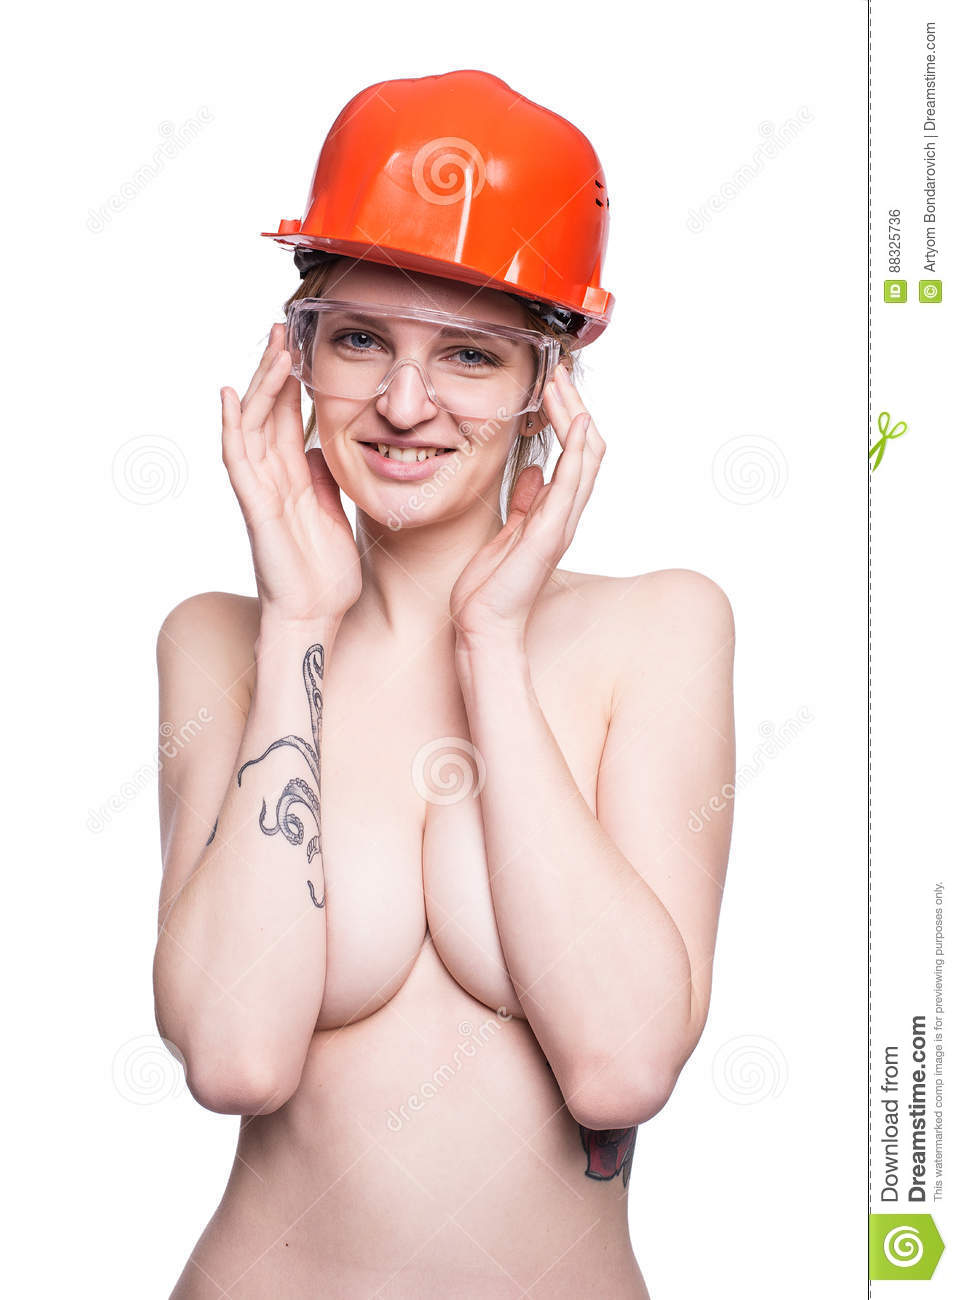 Nude construction